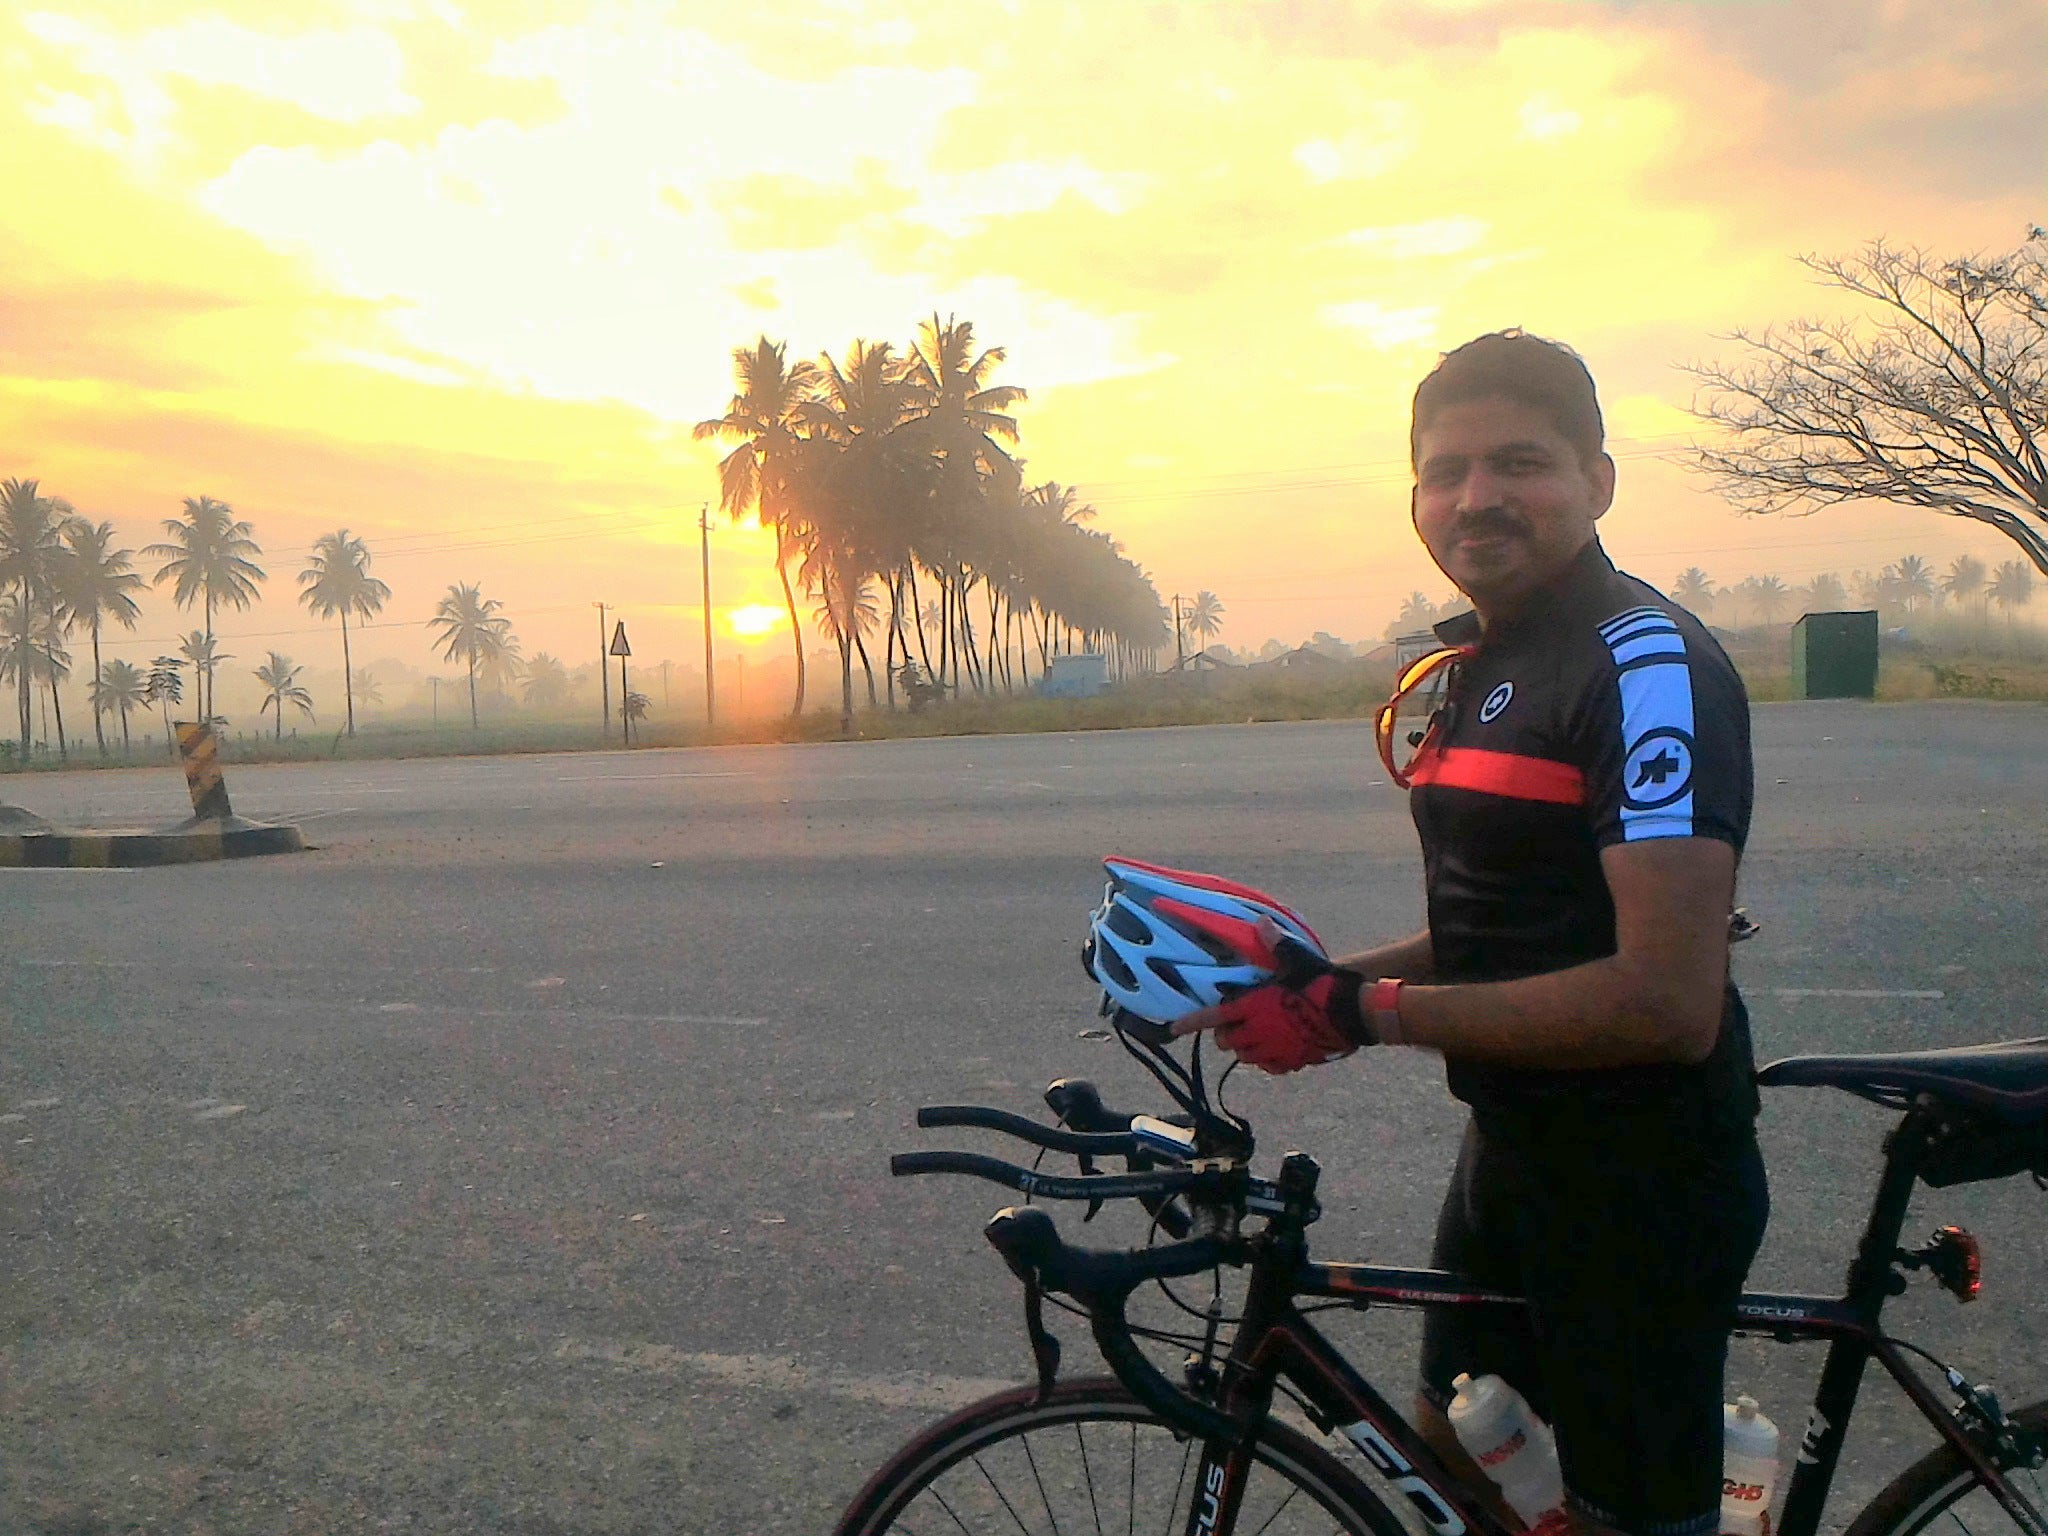 Biju Kunnappada on his morning cycling ride in Bengaluru, India - via Bangalore Roadsters Cycling Group